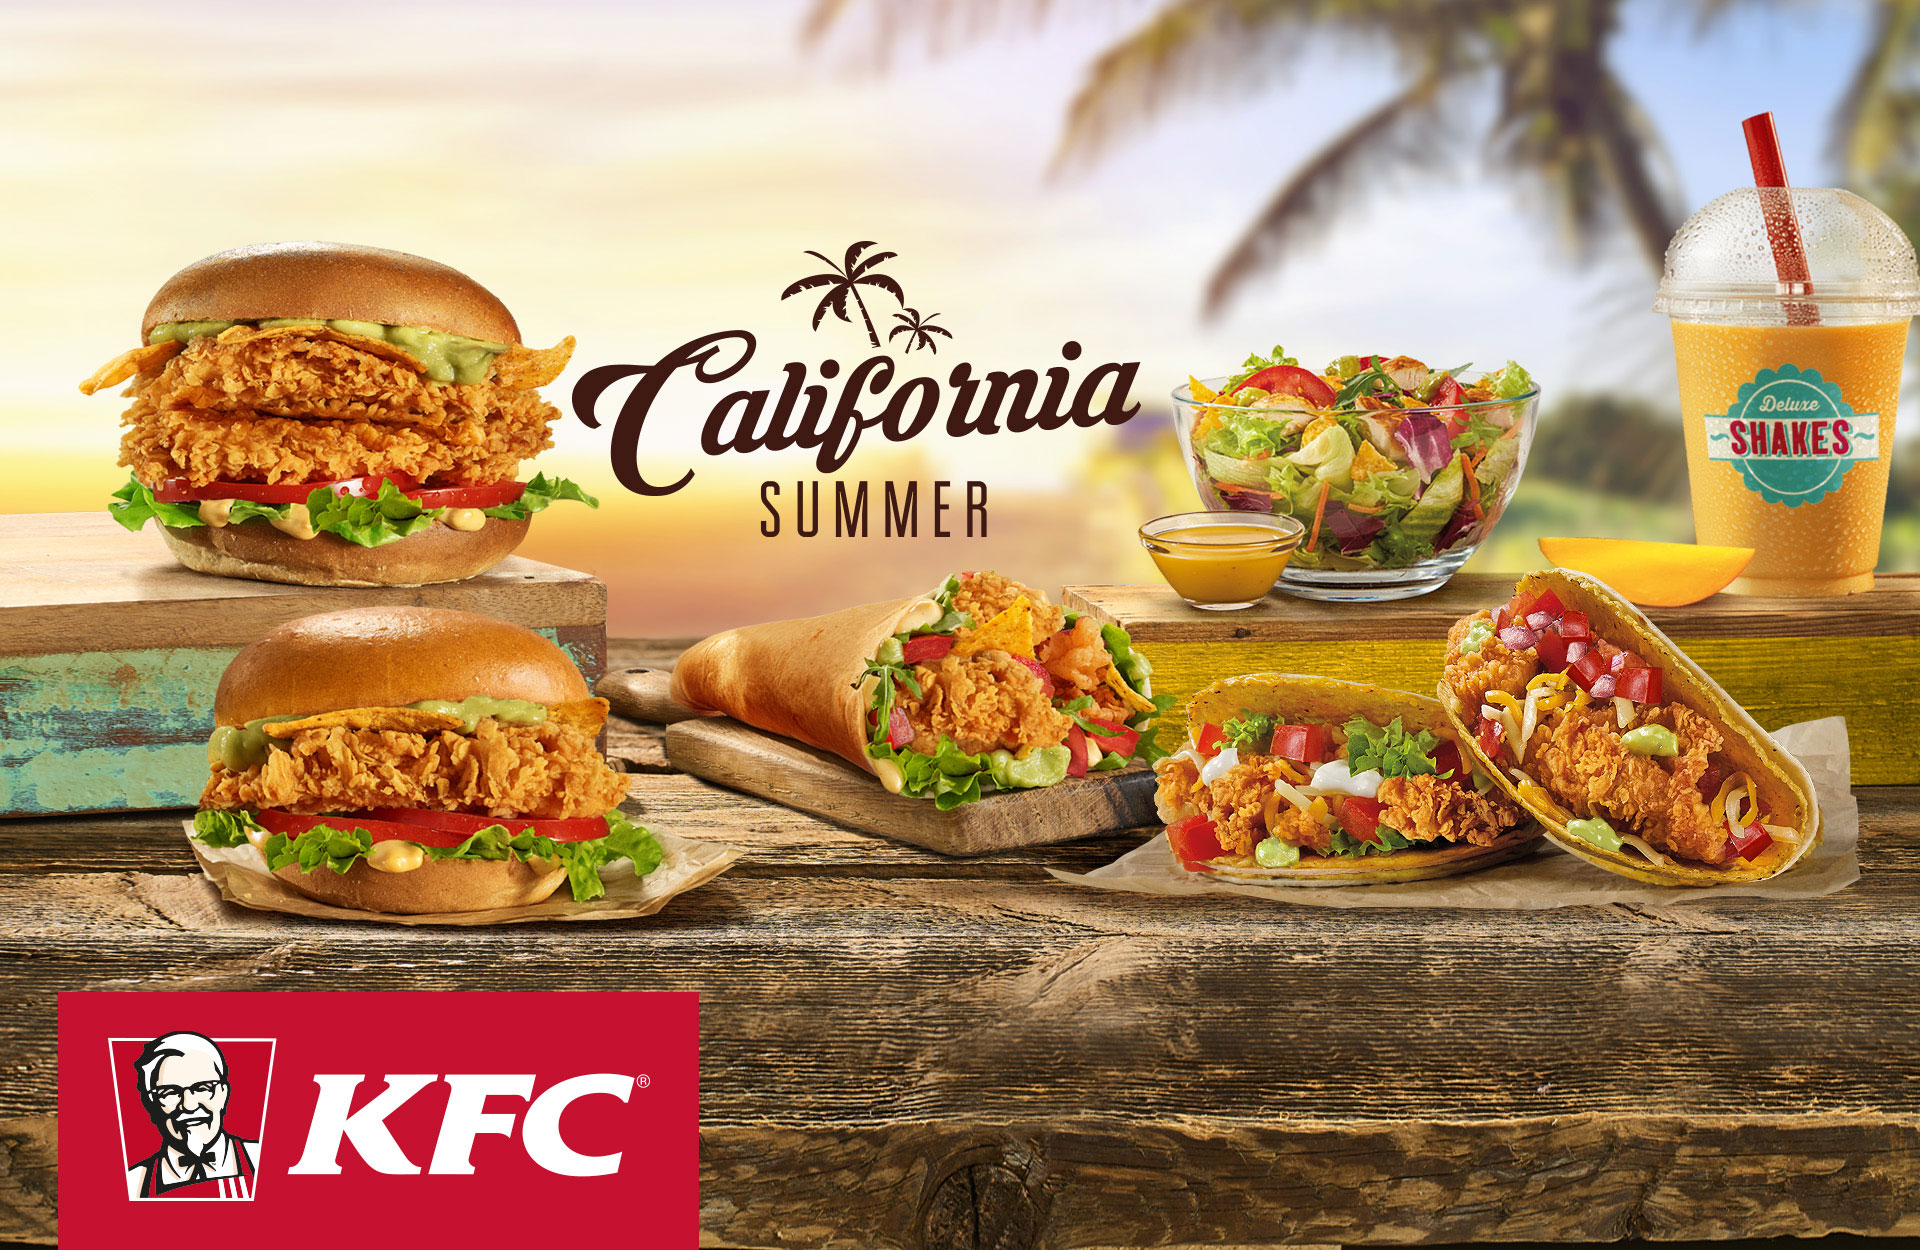 kfc_california_w4_slider.jpg